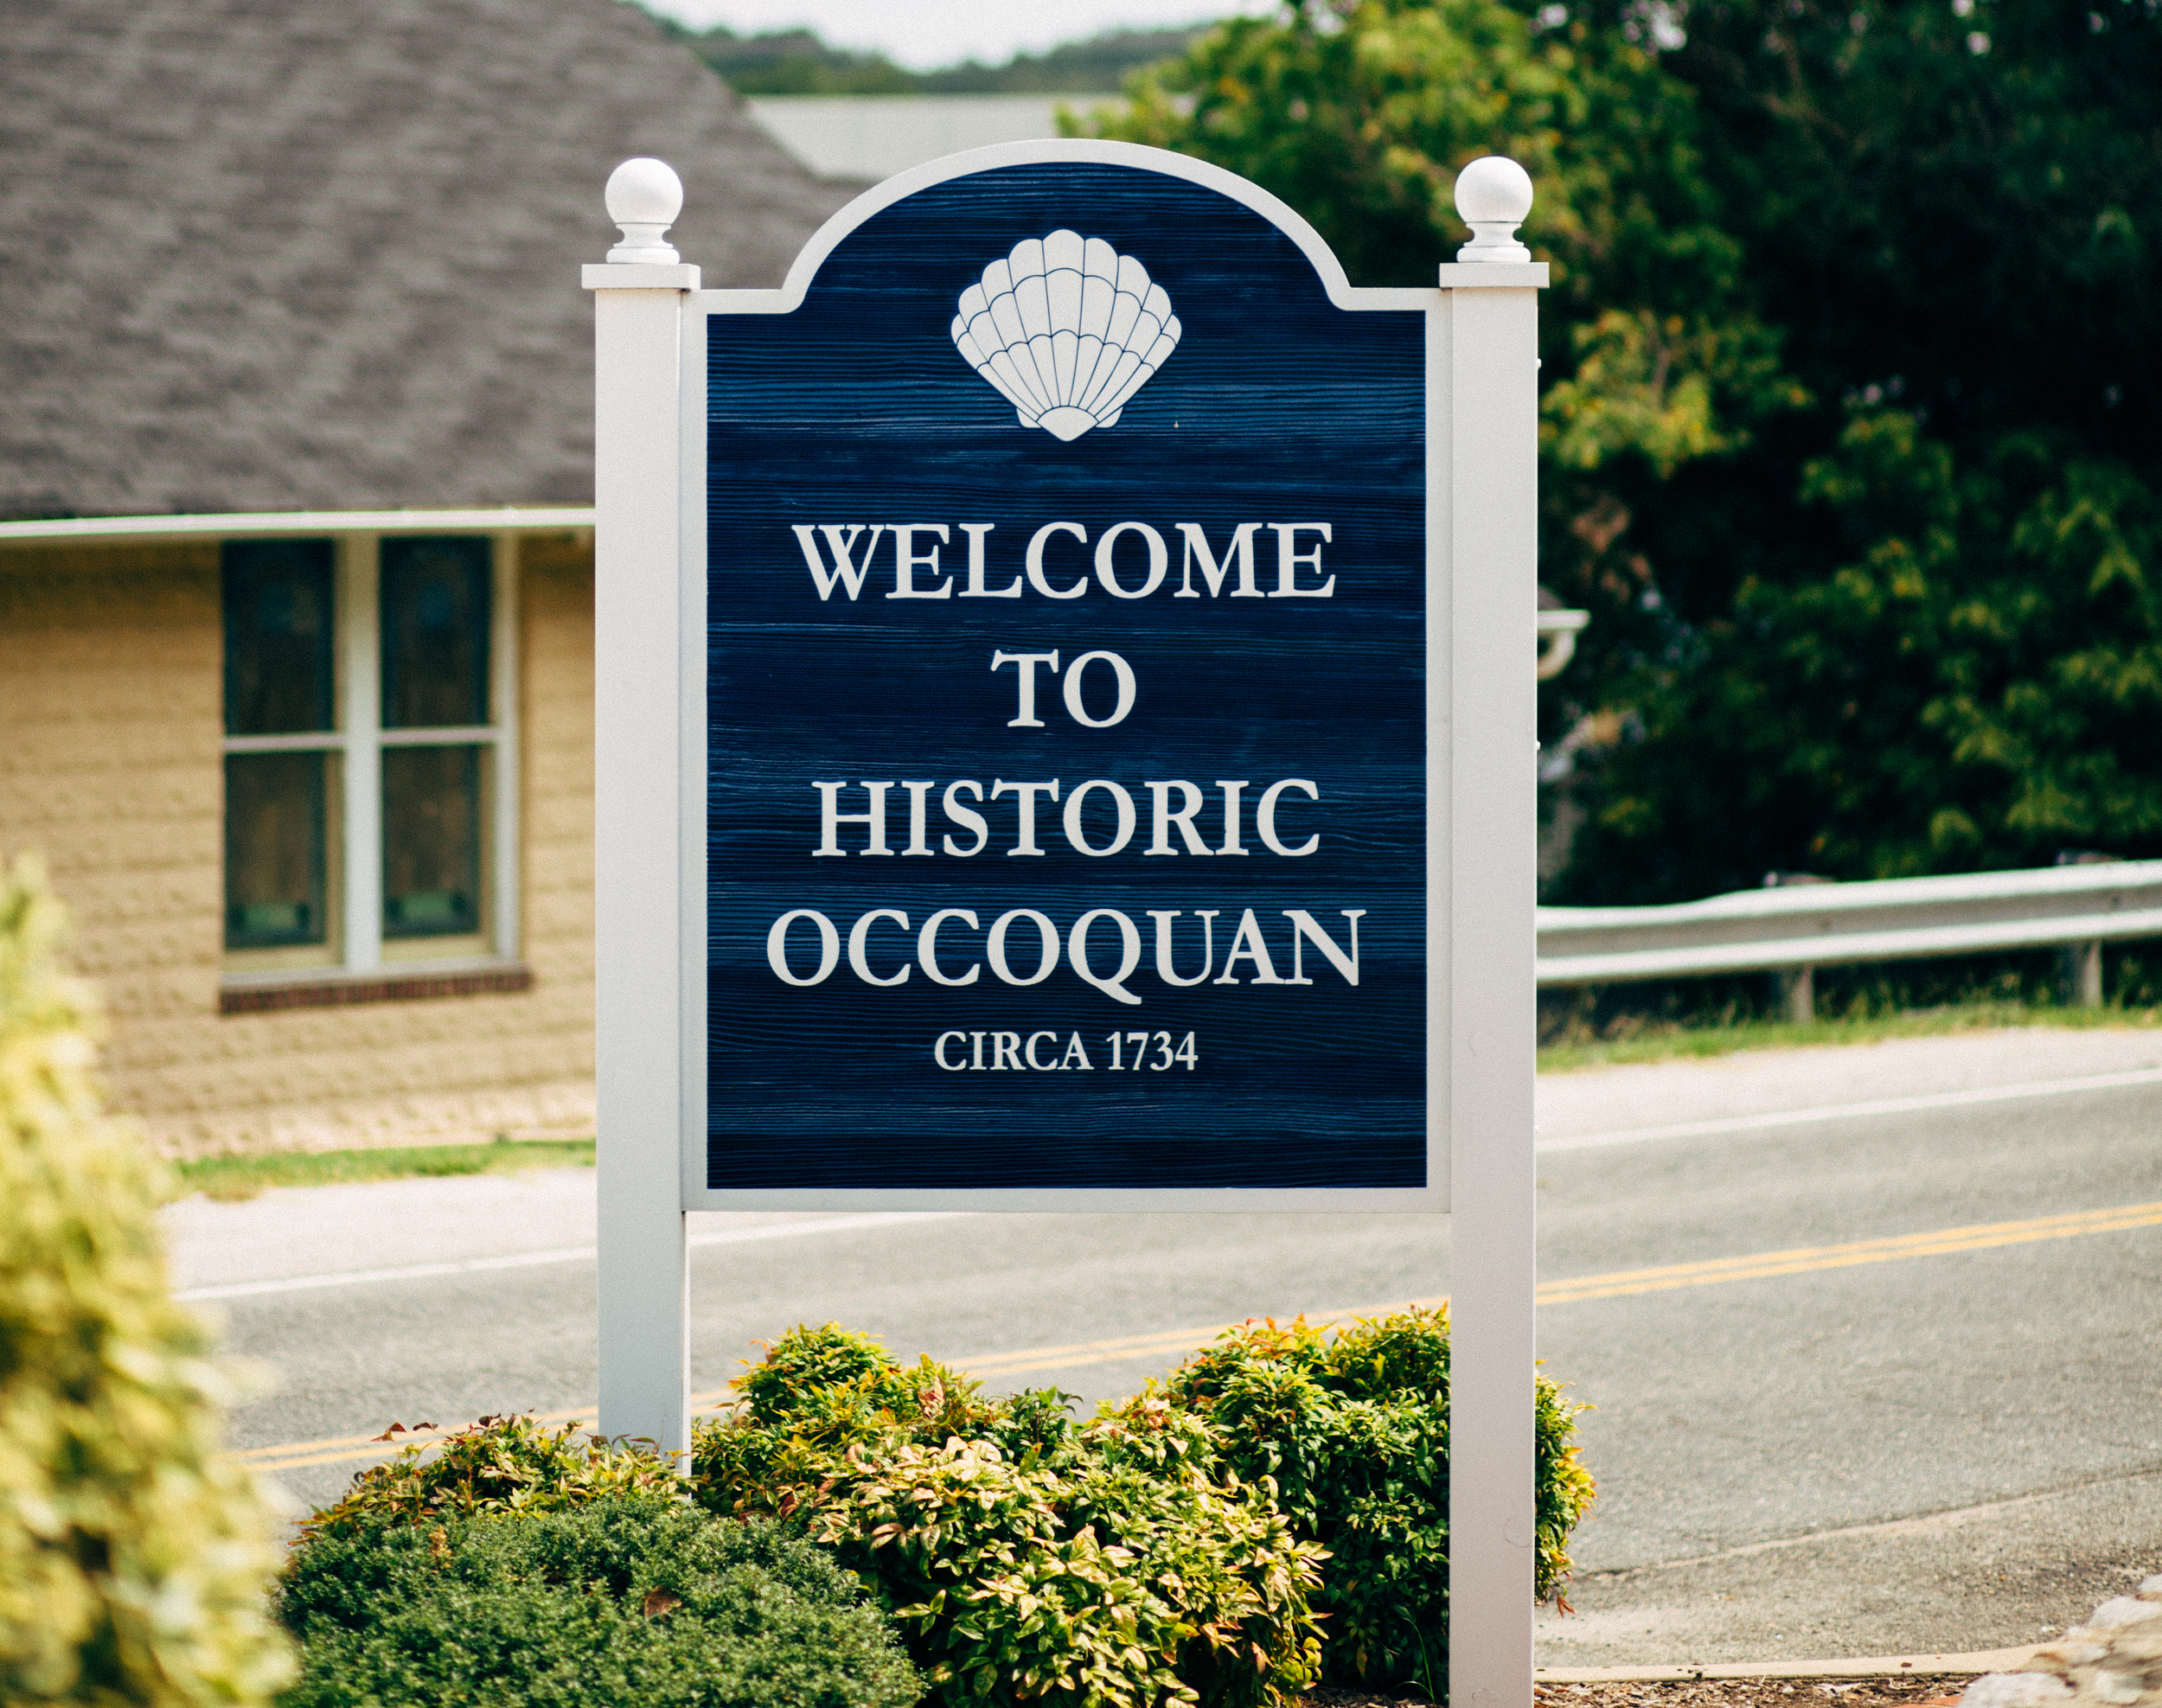 The welcome sign that greets you when you first drive into this little historic town.